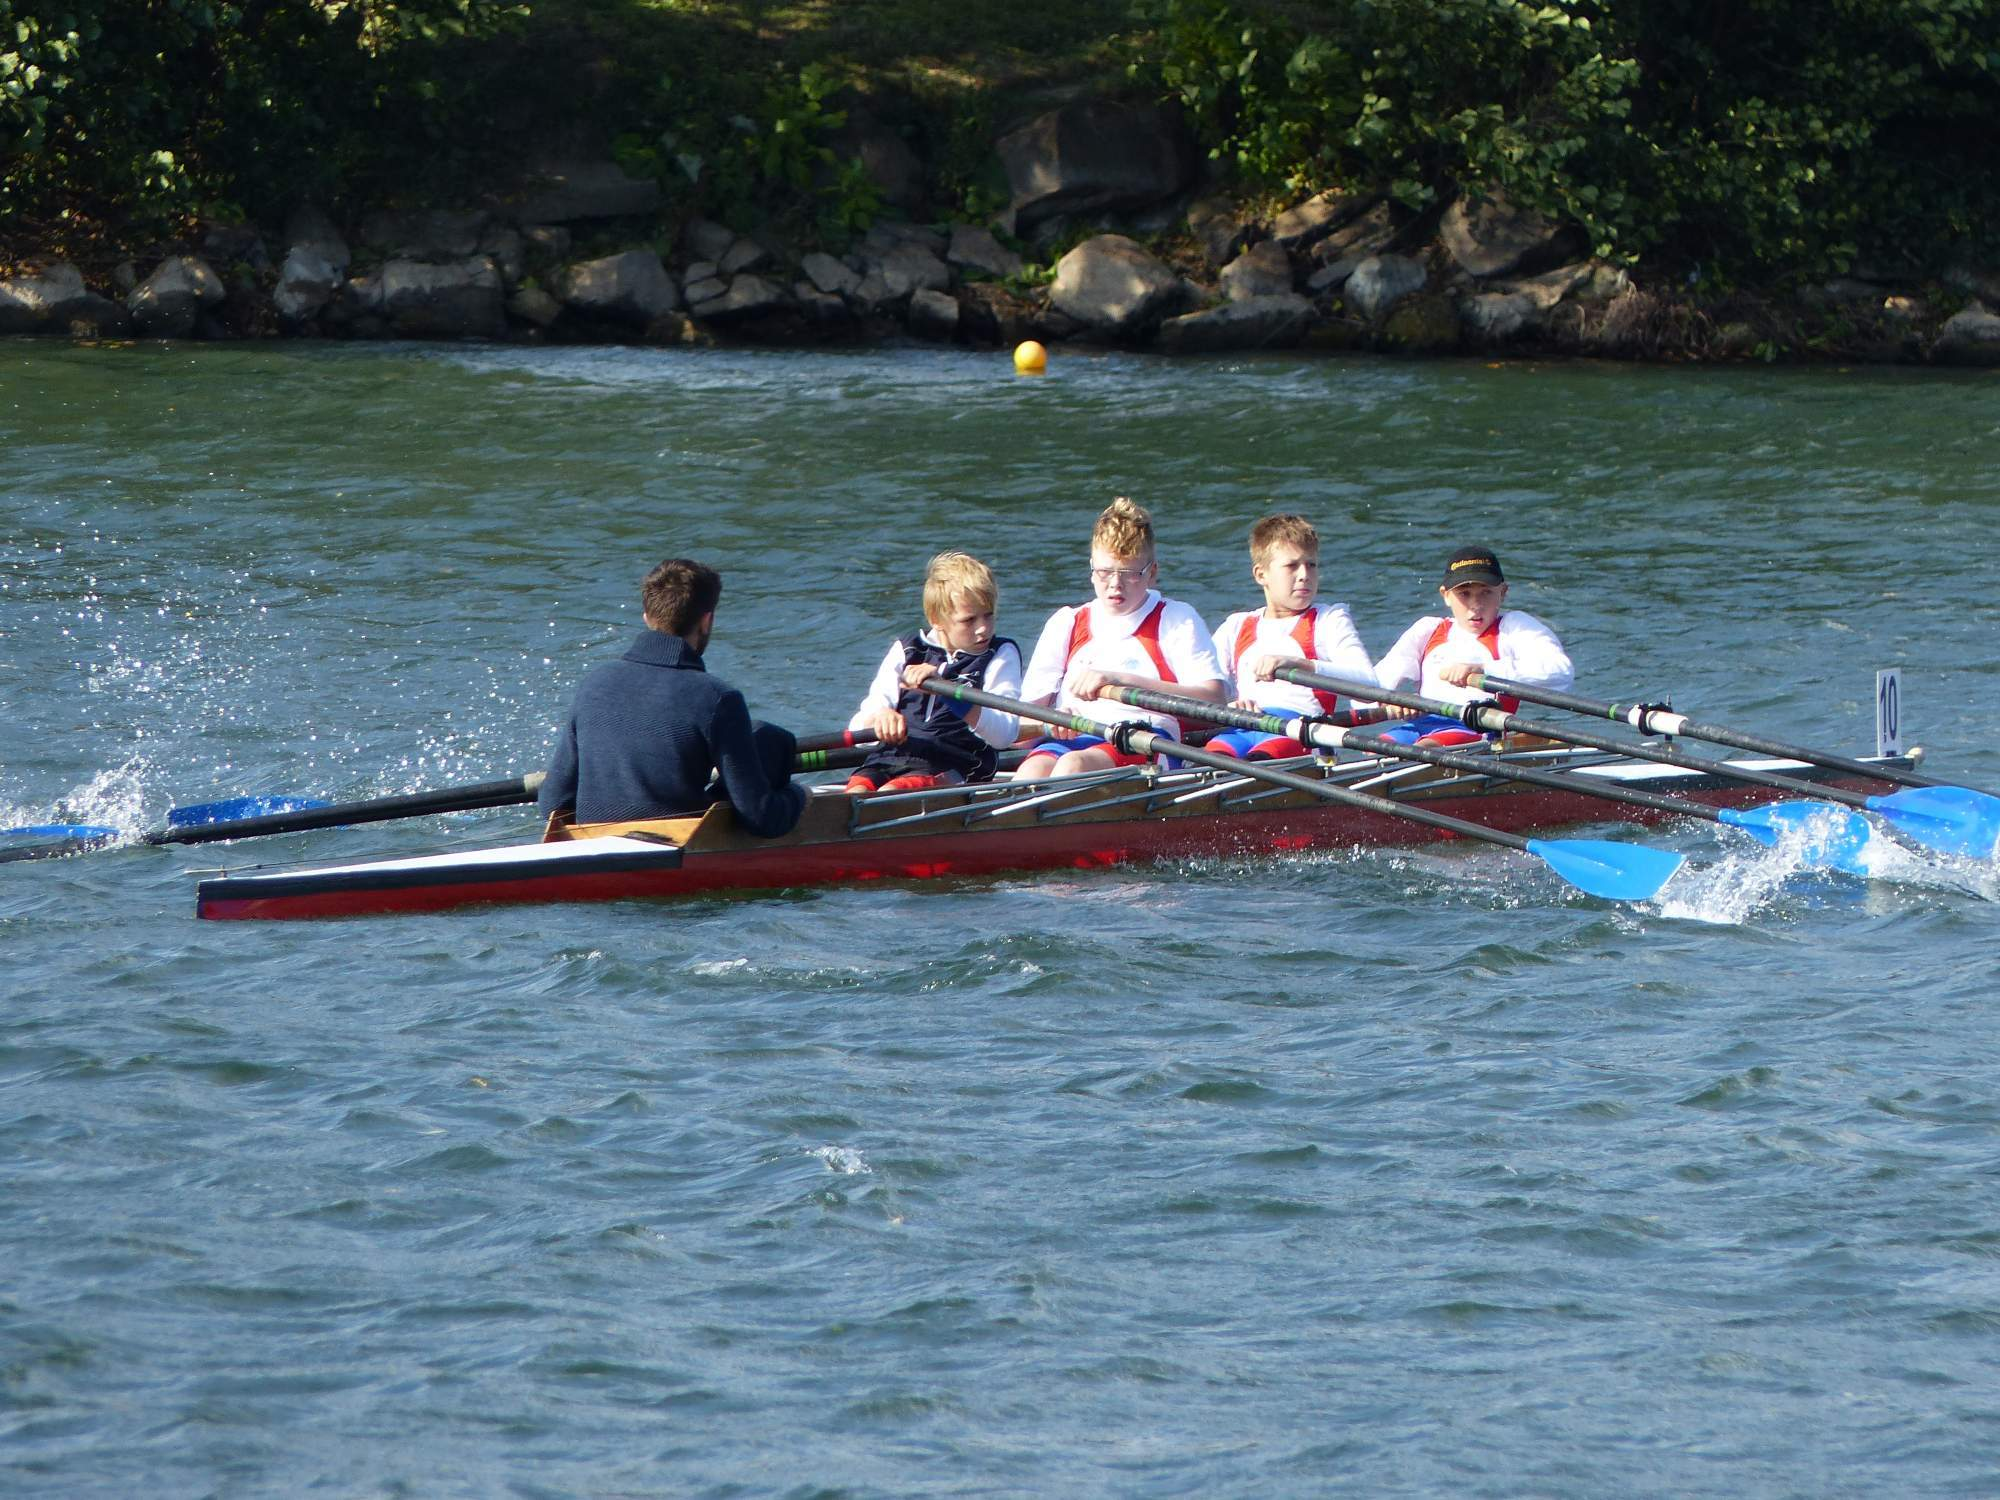 Very Experienced Stroke on a coxed quad